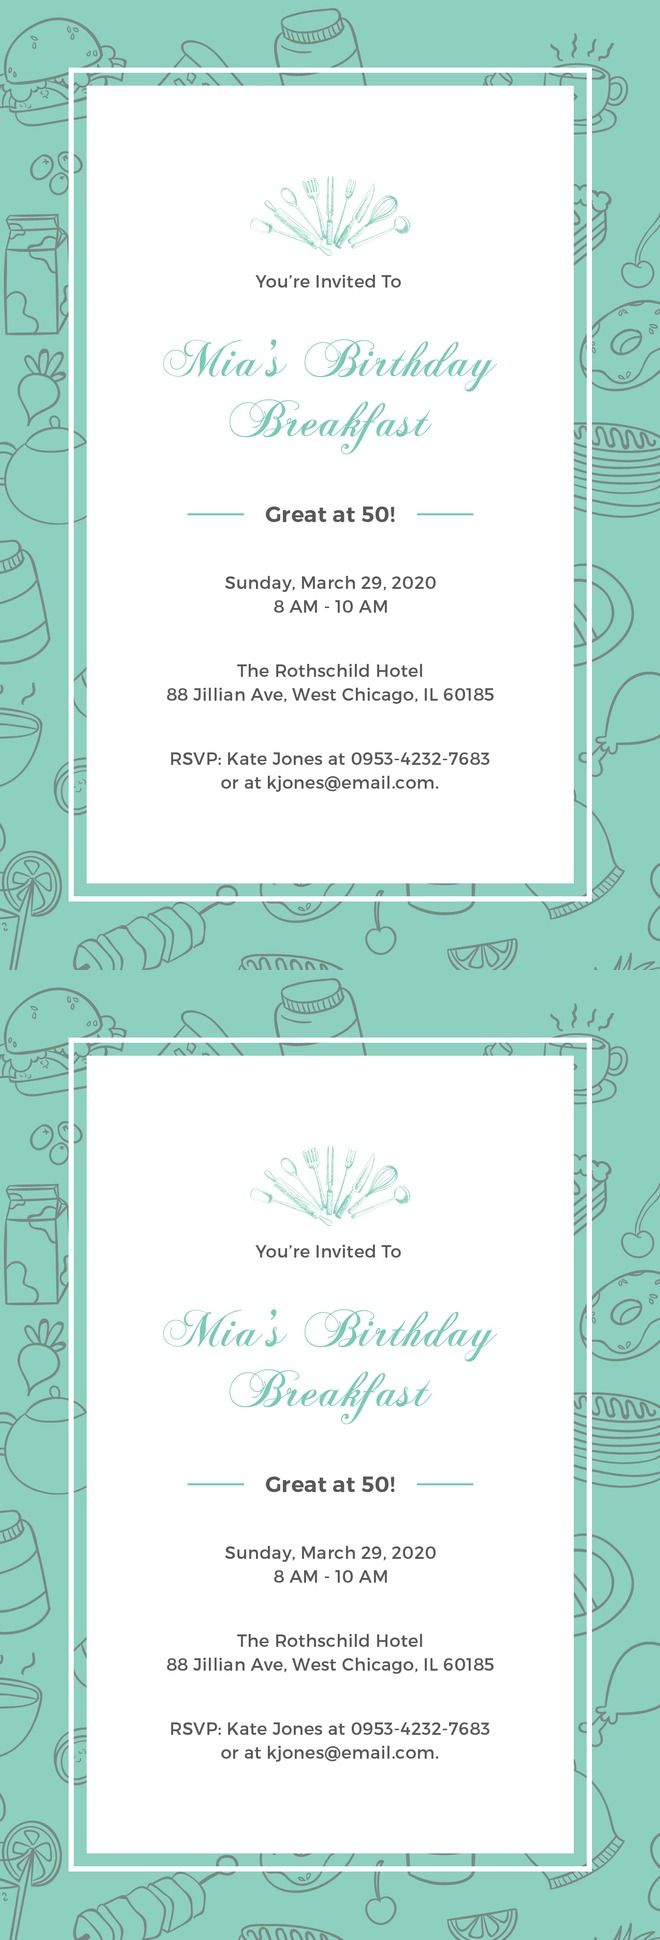 Free Birthday Breakfast Invitation Template - Downloadable Birthday Invitation Design for Breakfast & Tea Party. Get a Print Ready Template for Birthday Party Invitation. Available in PSD, Illustrator, Word, InDesign, Publisher, iPages.